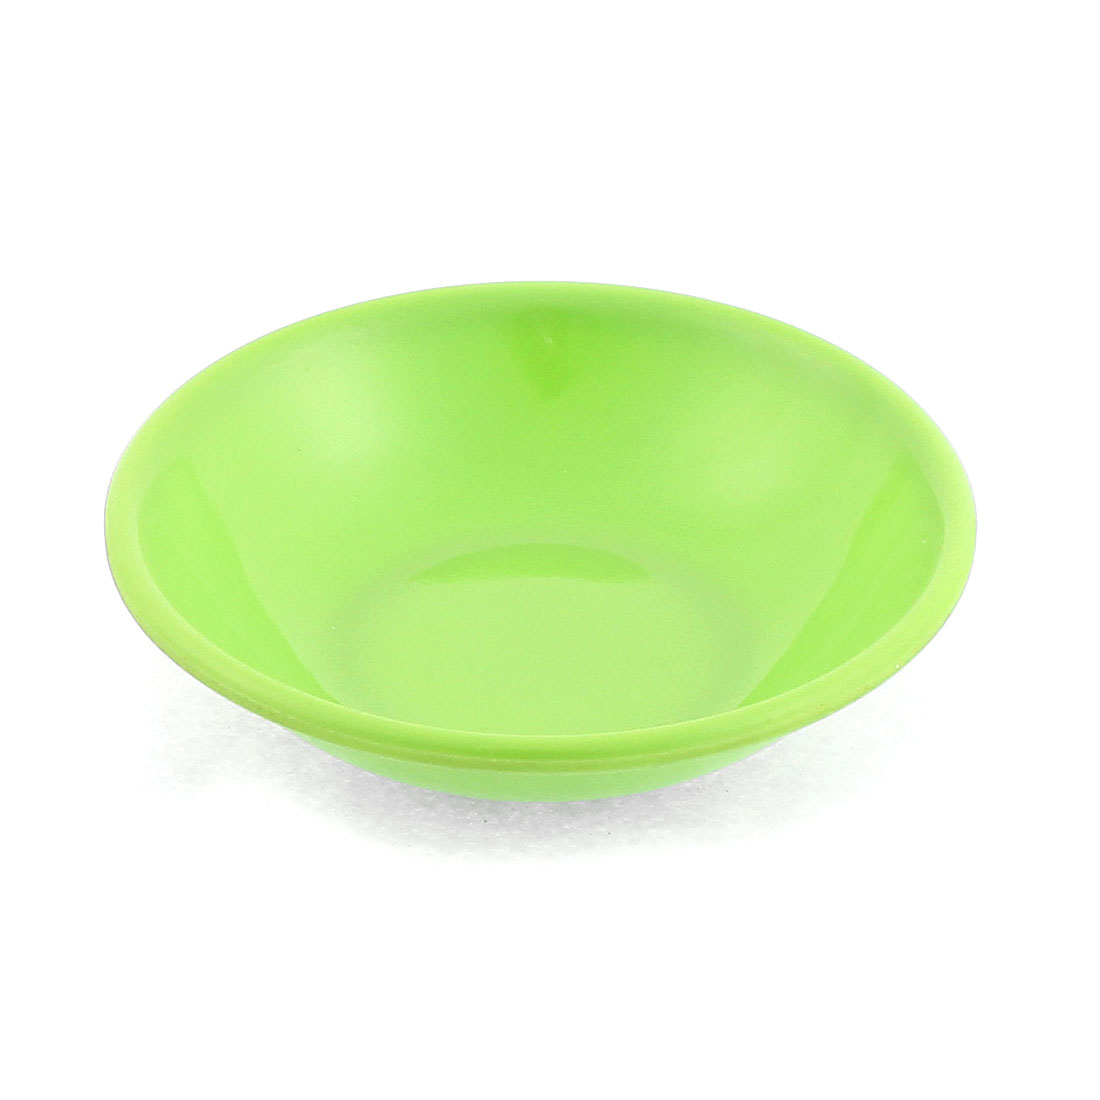 Kitchen Soy Sauce Wasabi Dipping Plastic Dish Plate Green